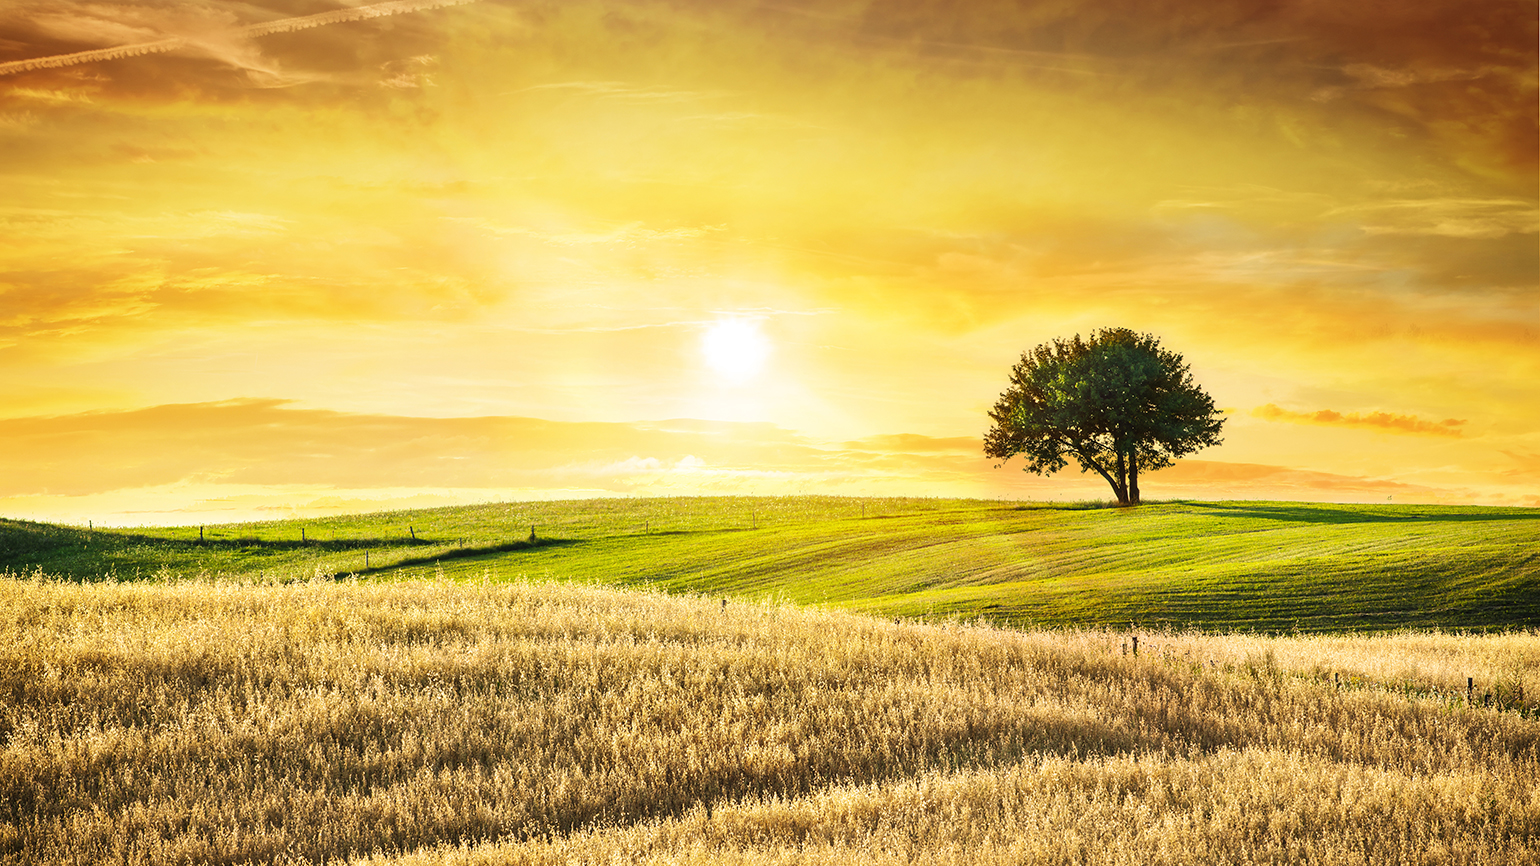 The sun rises over a golden field of wheat